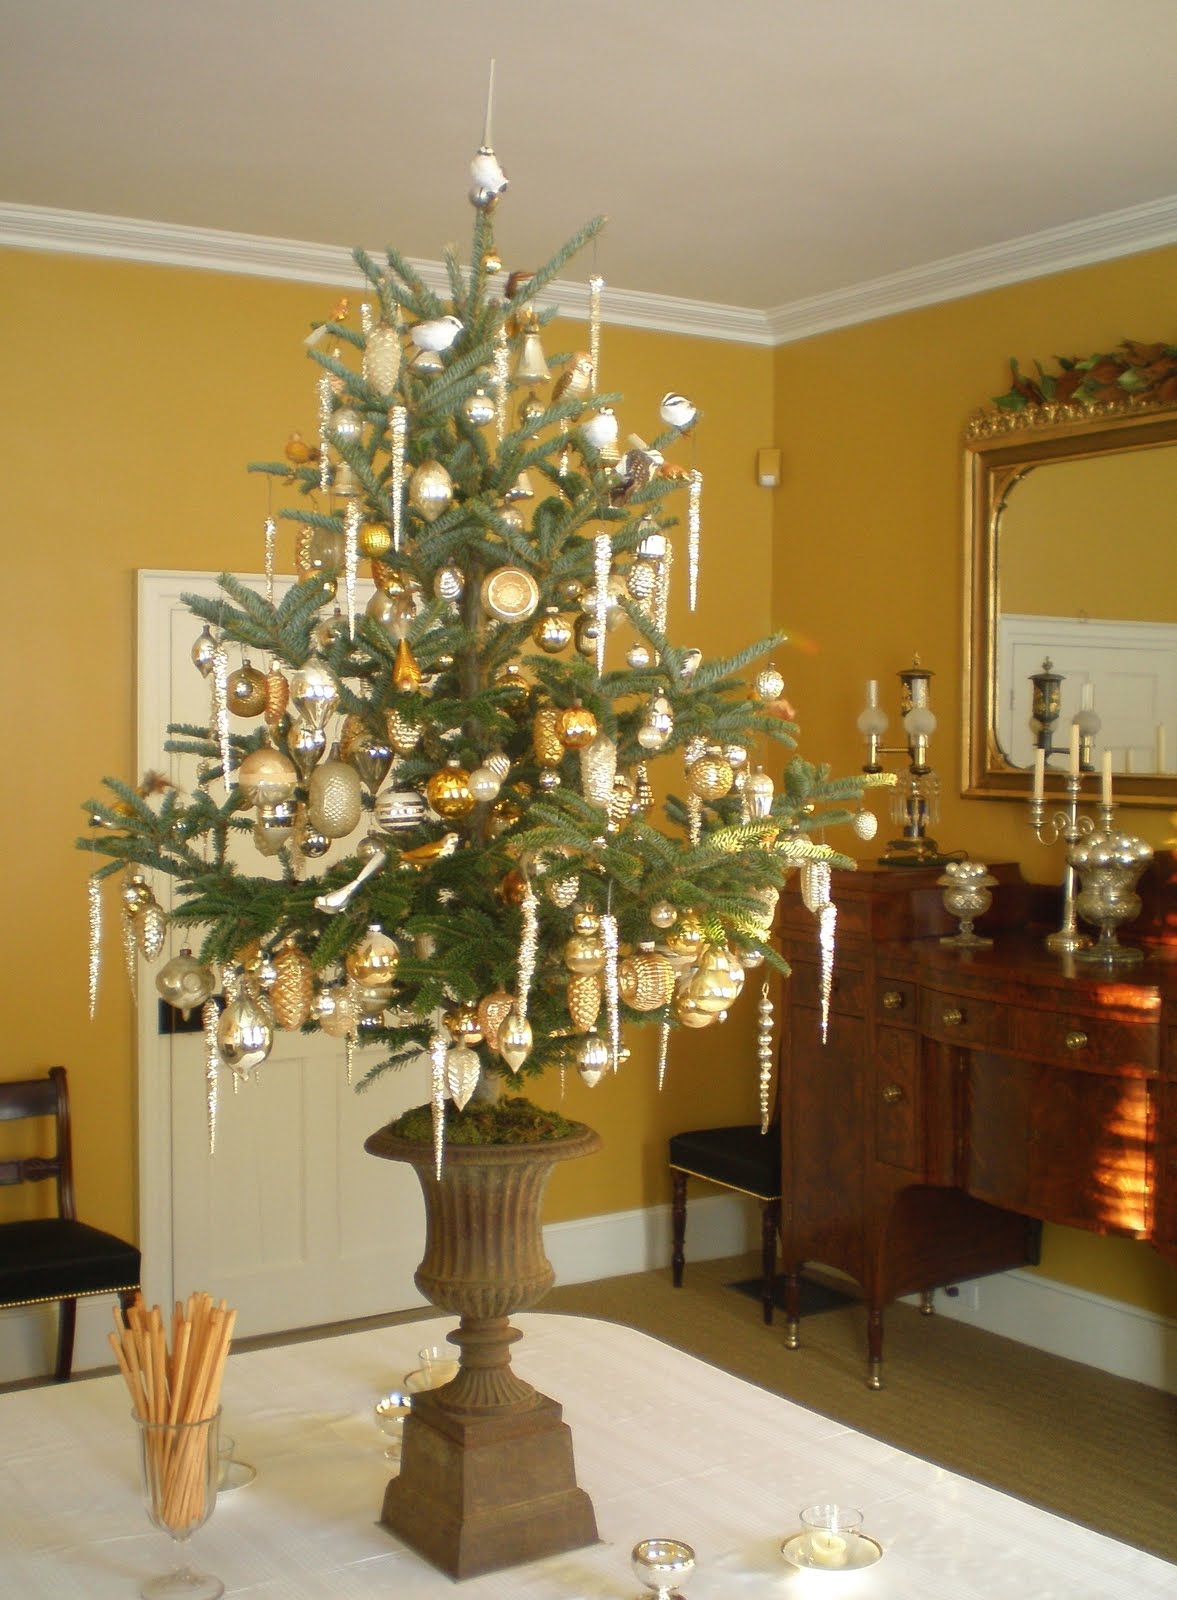 Tabletop christmas tree decorating ideas - Reggie Darling Via Here